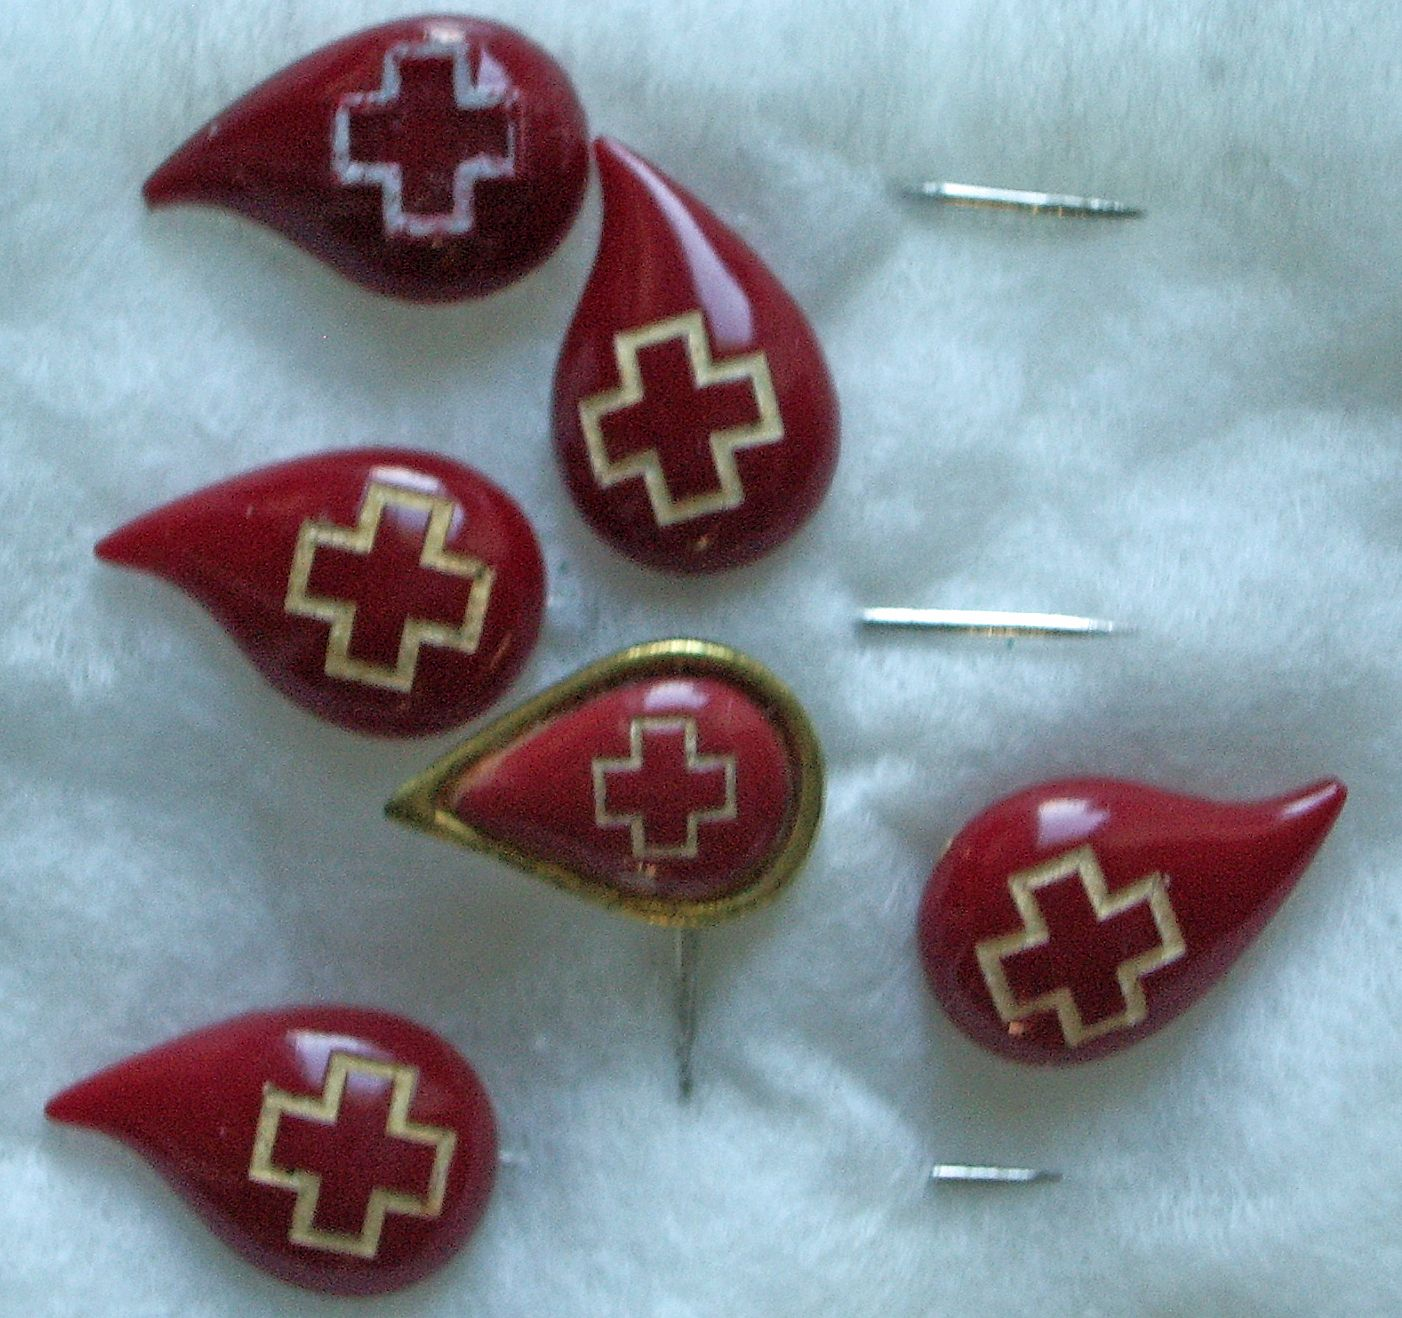 Image result for red cross donor pins